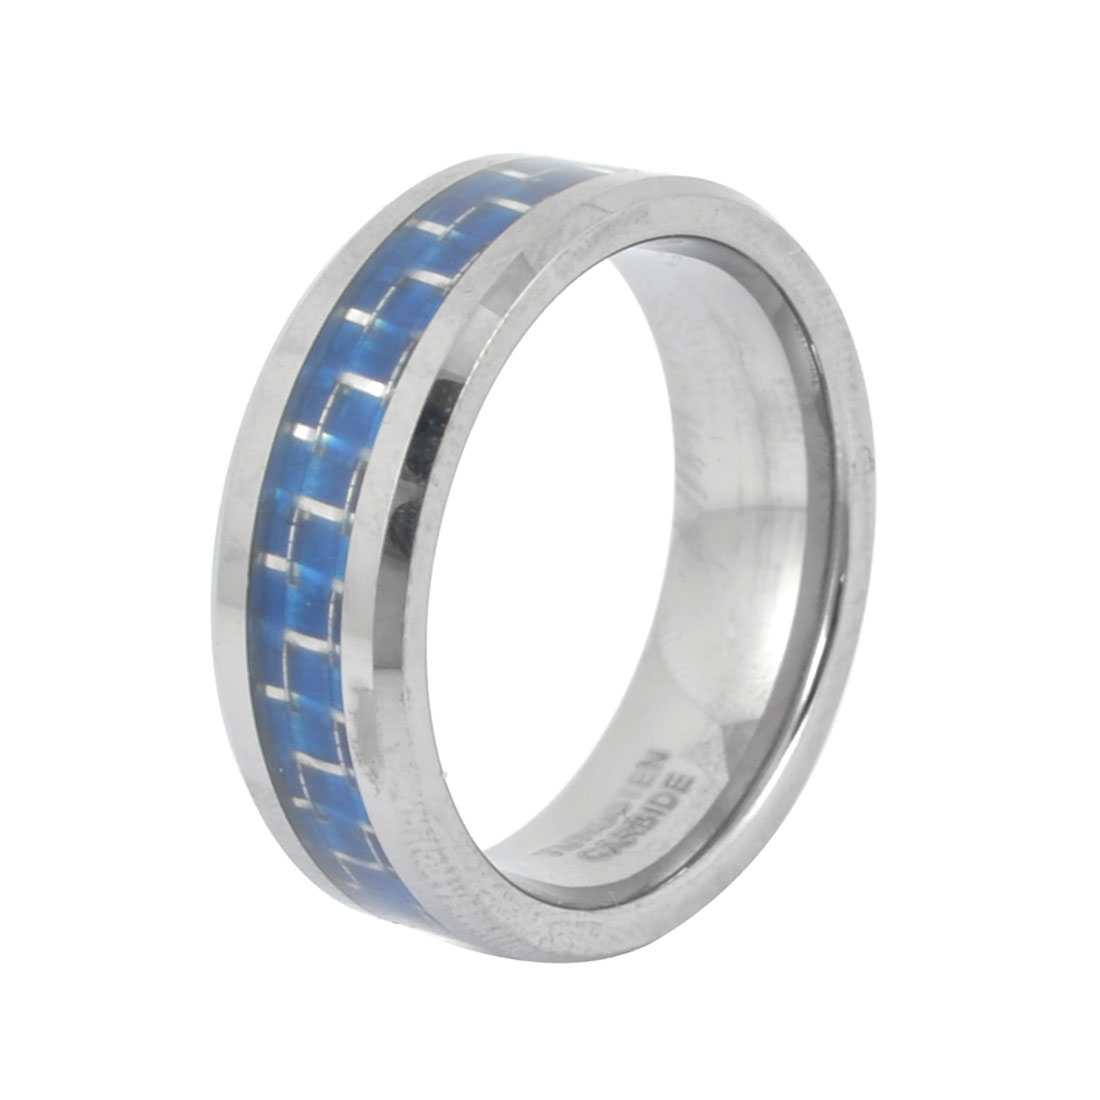 Silver Tone Blue 8mm Width Finger Ring Decoration US 10 1/2 for Man